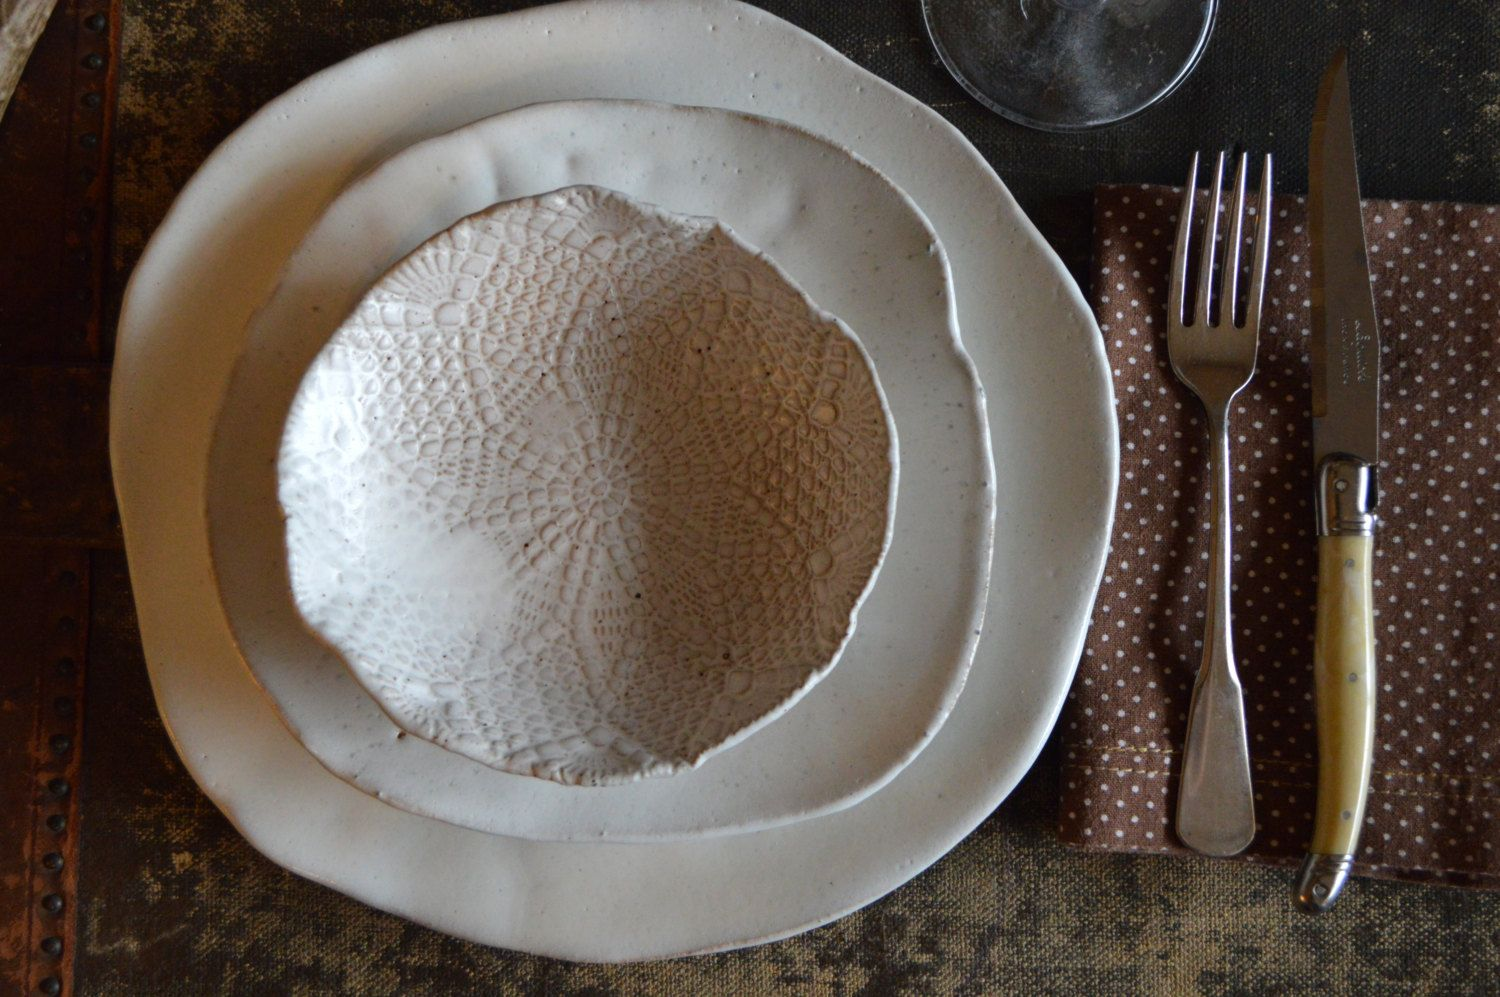 Nice Ceramic Dinner Plates   White Dinnerware Plates Ceramic Bowl Handmade  Tableware Stoneware Dishes Dinnerware By Christiane Barbato By  BlueDoorCeramics On ...